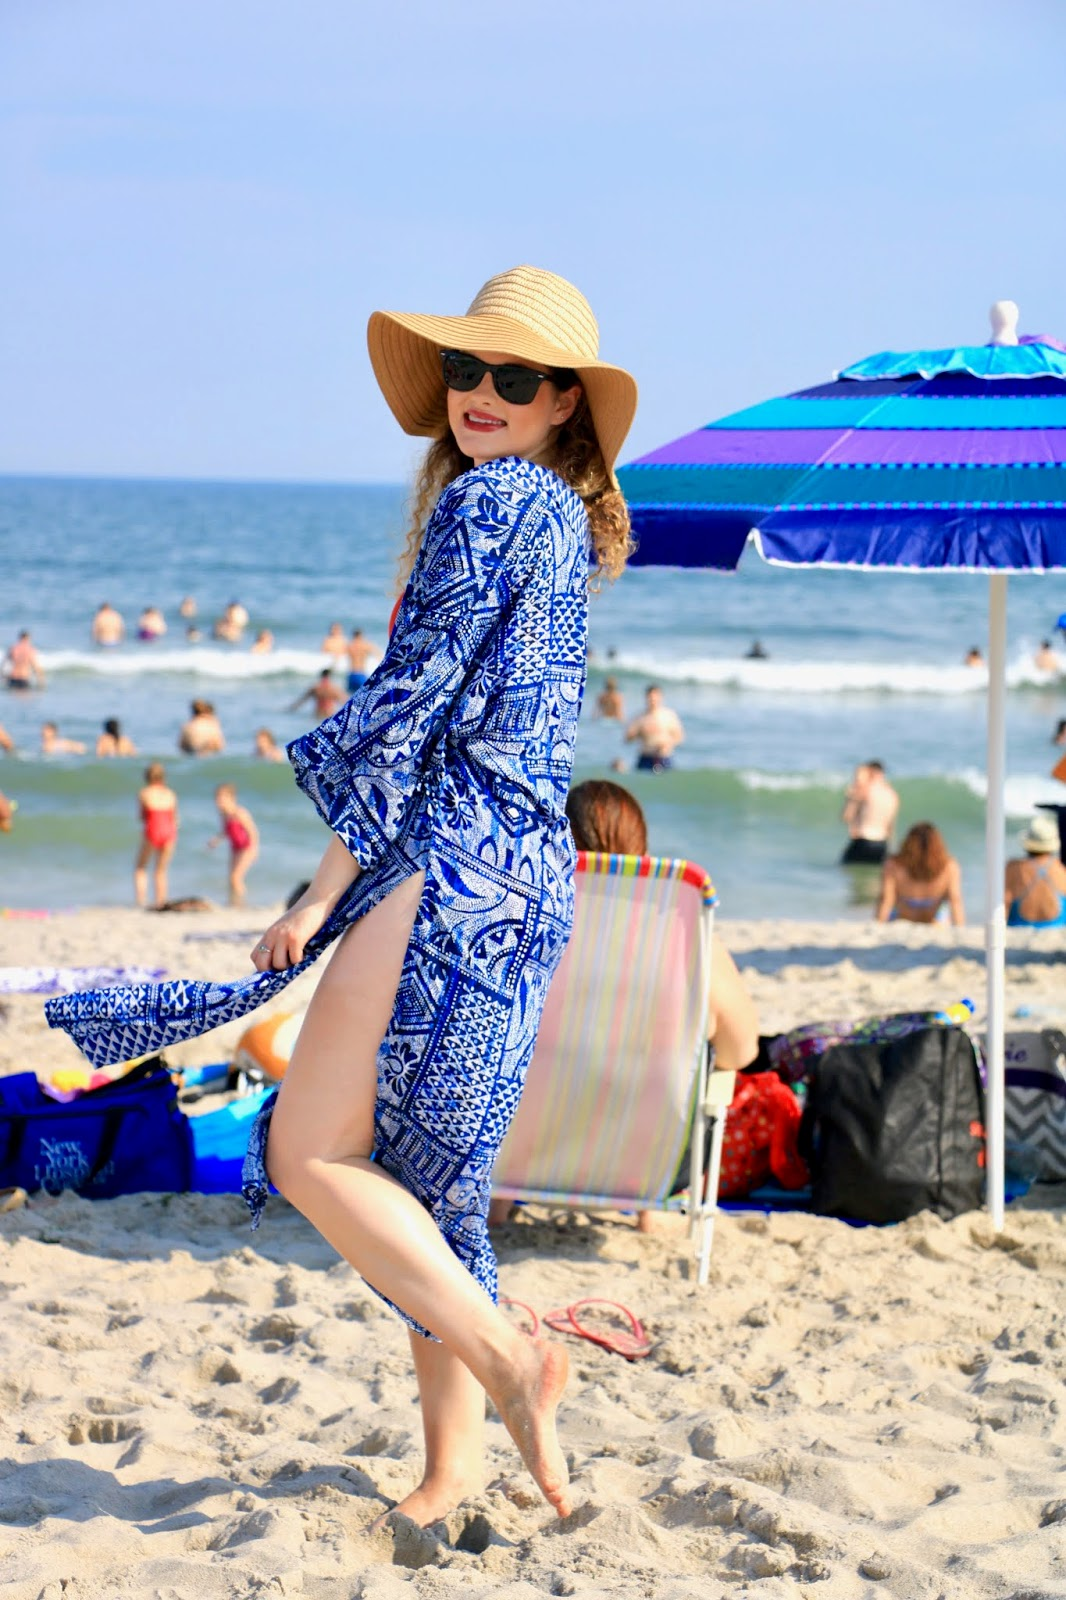 Nyc fashion blogger Kathleen Harper's cute beach coverup from Gap